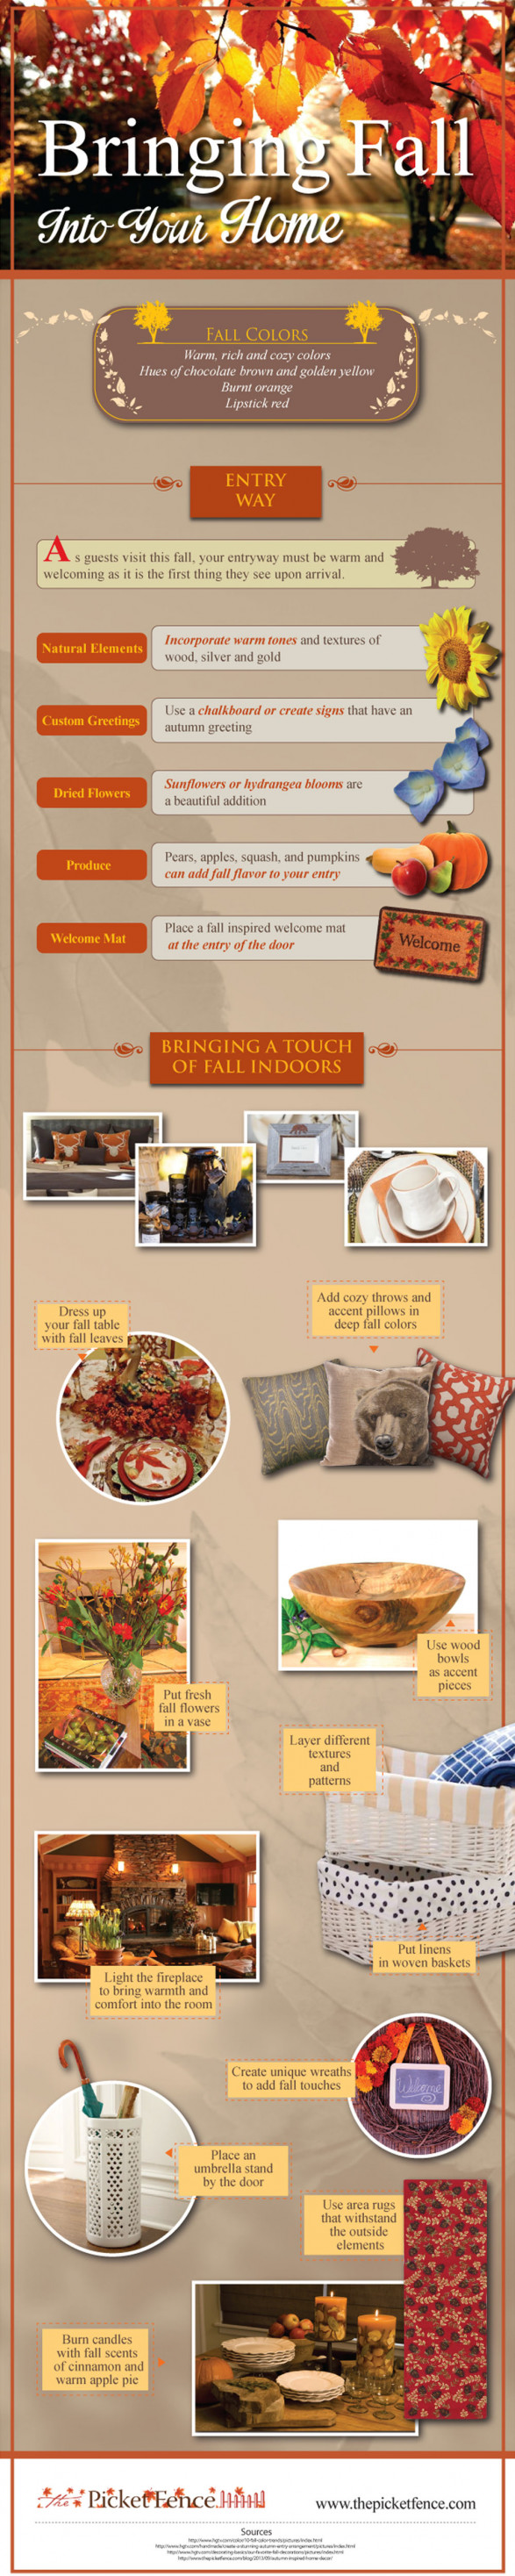 Bringing Fall Into Your Home, home design for autumn, fall home design ideas